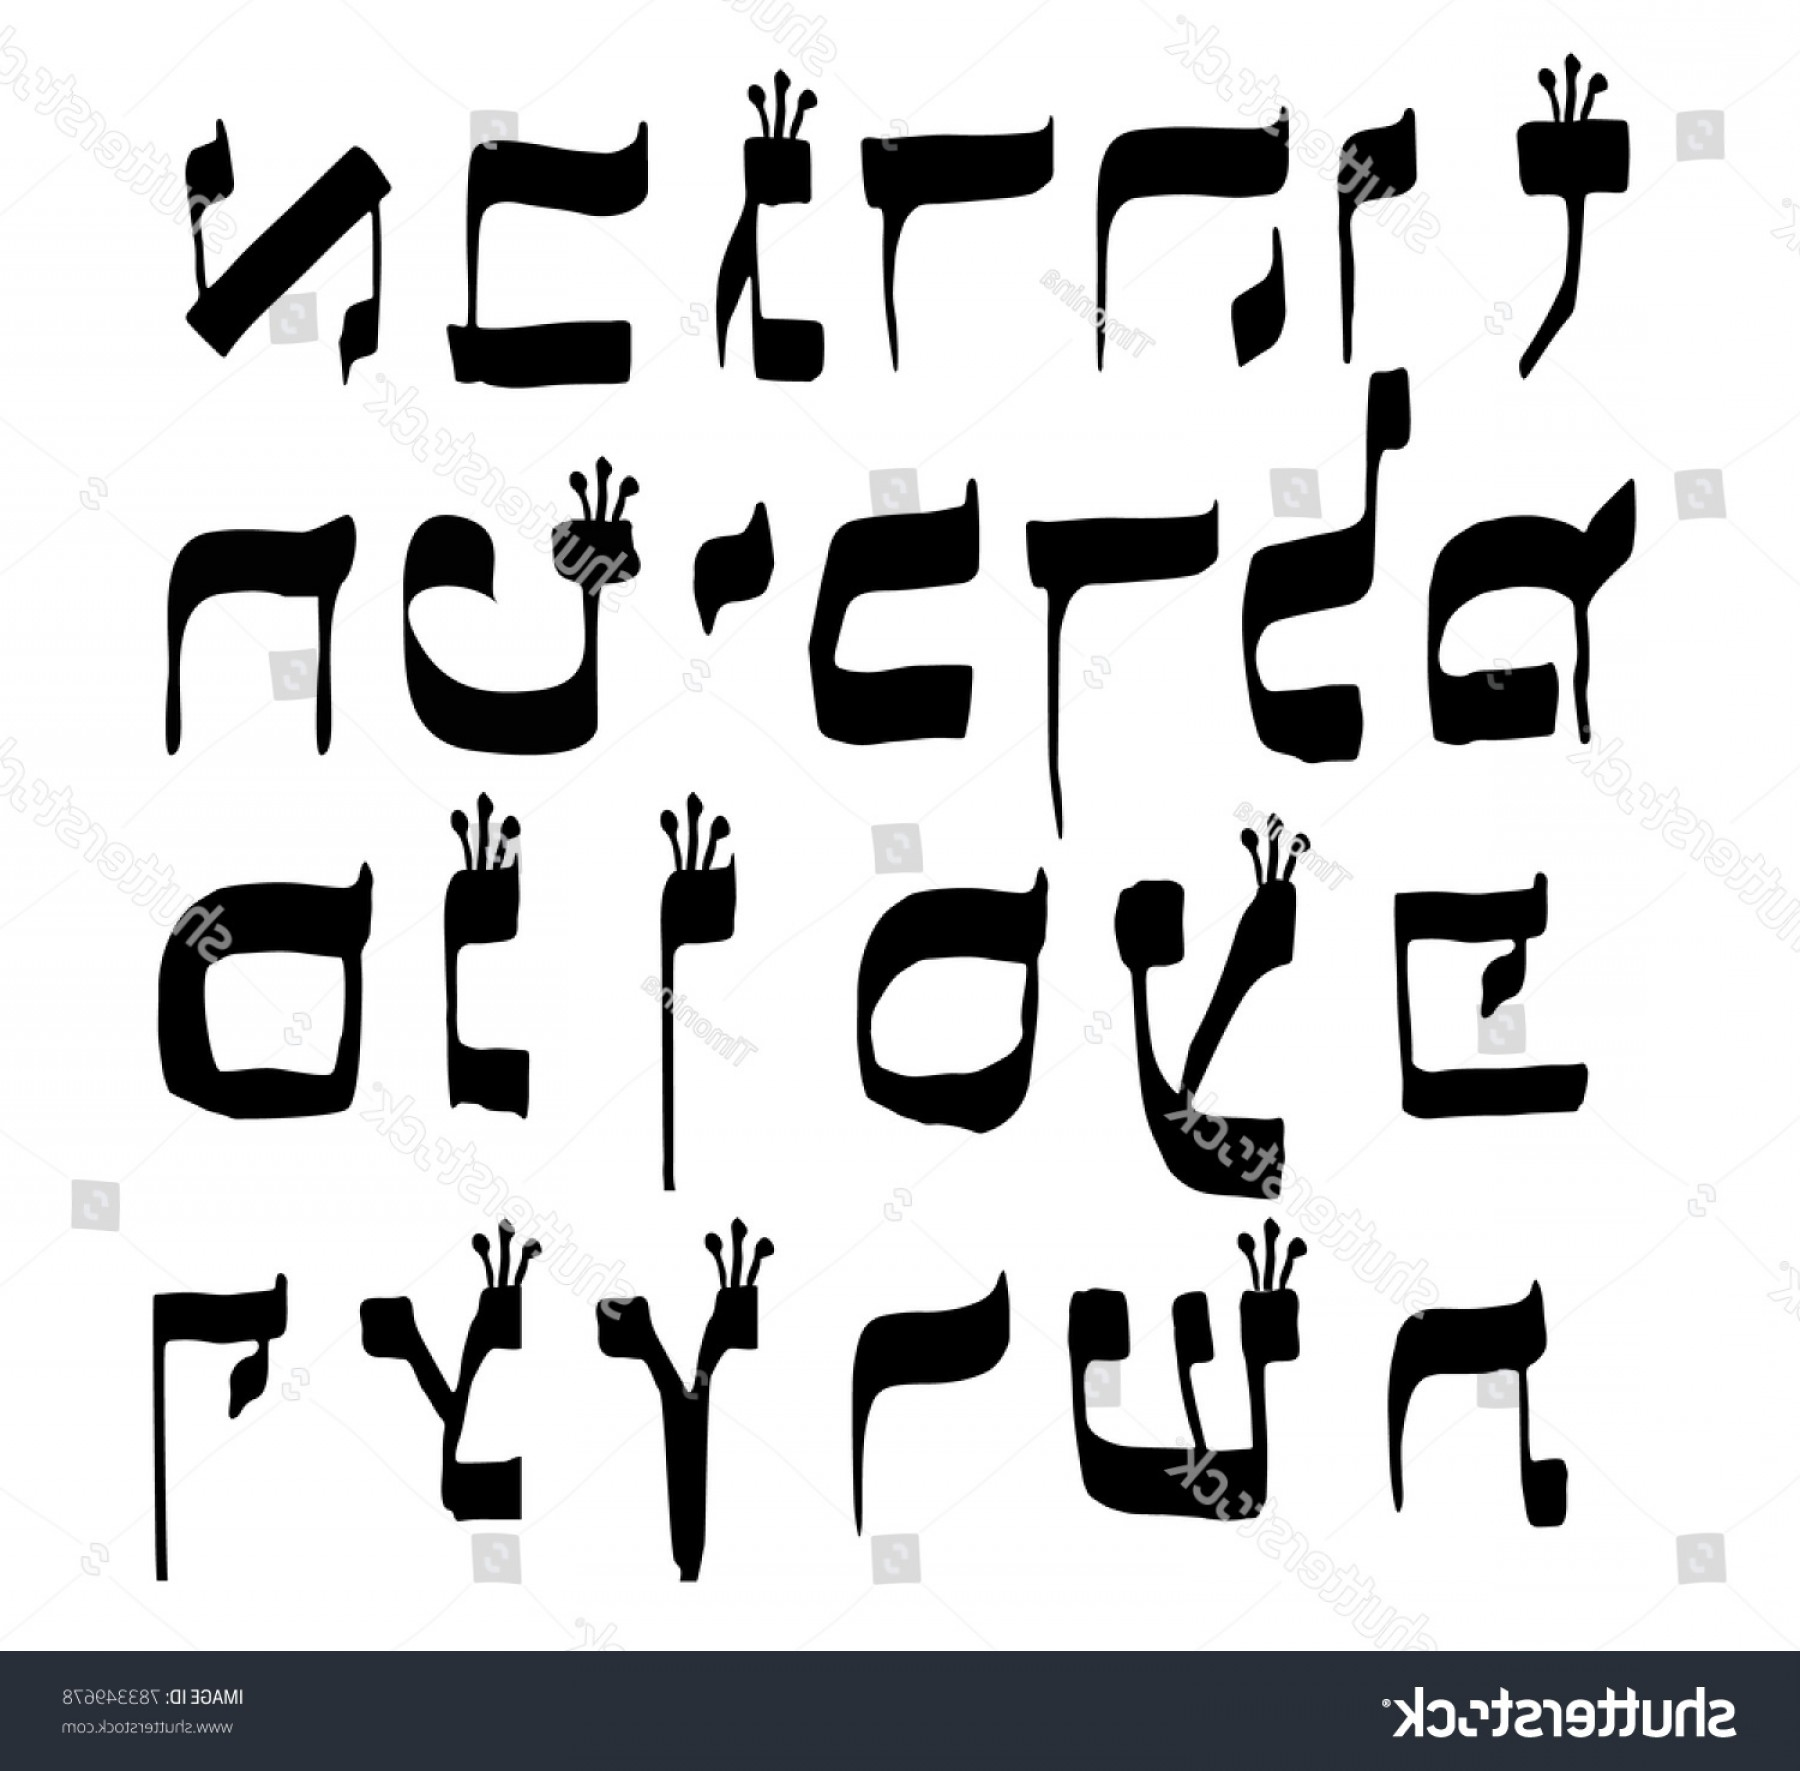 Decorative Font Vector Illustration: Calligraphic Hebrew Alphabet Crowns Decorative Font